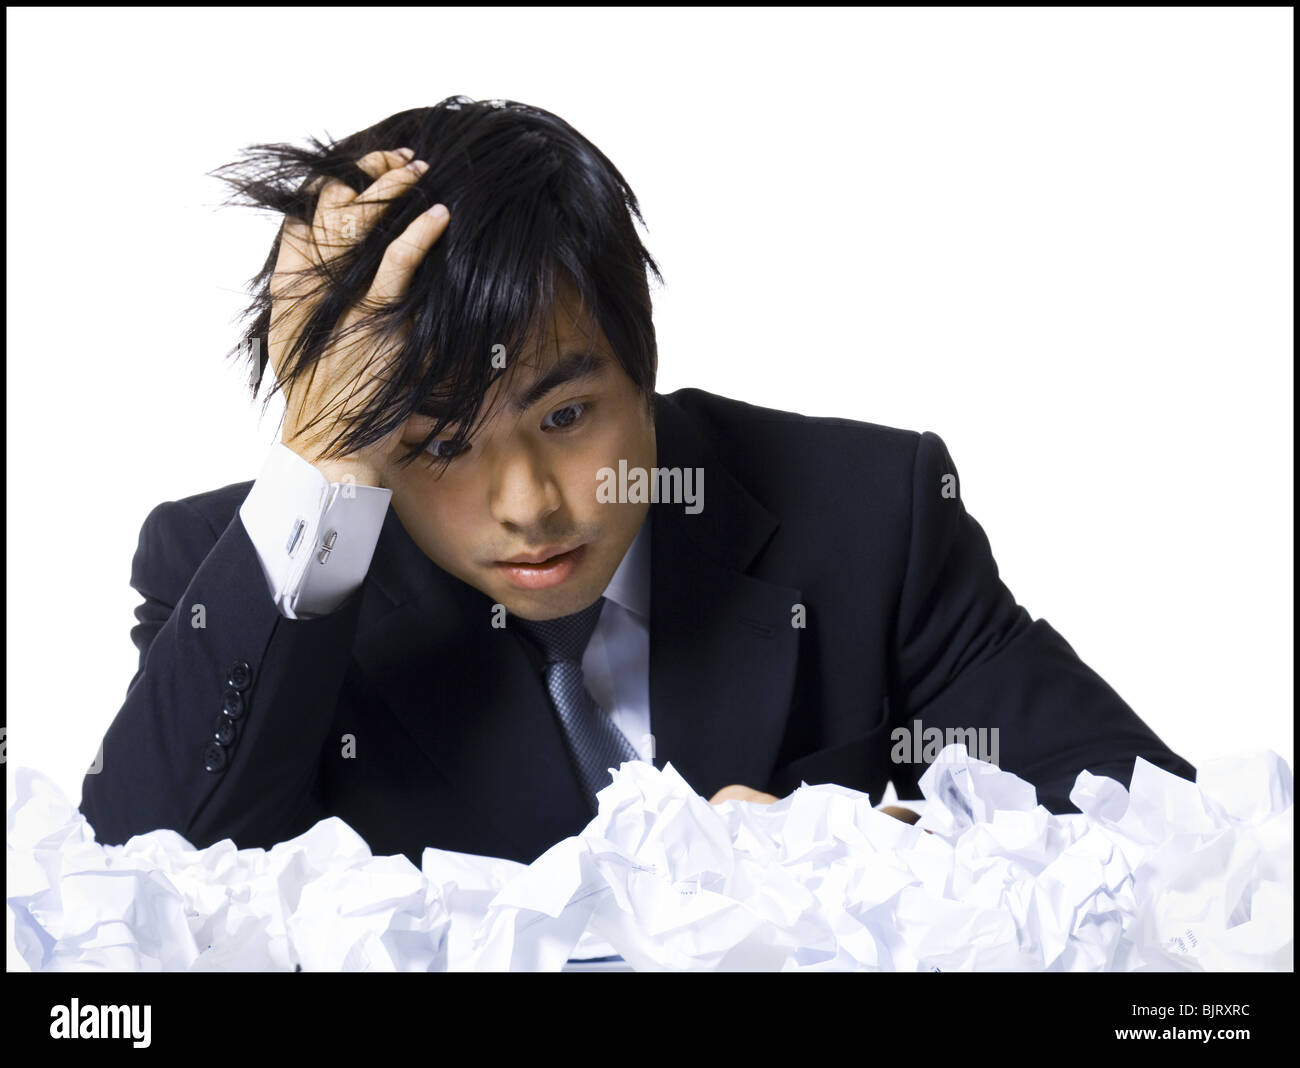 Frustrated businessman surrounded by crumpled papers - Stock Image